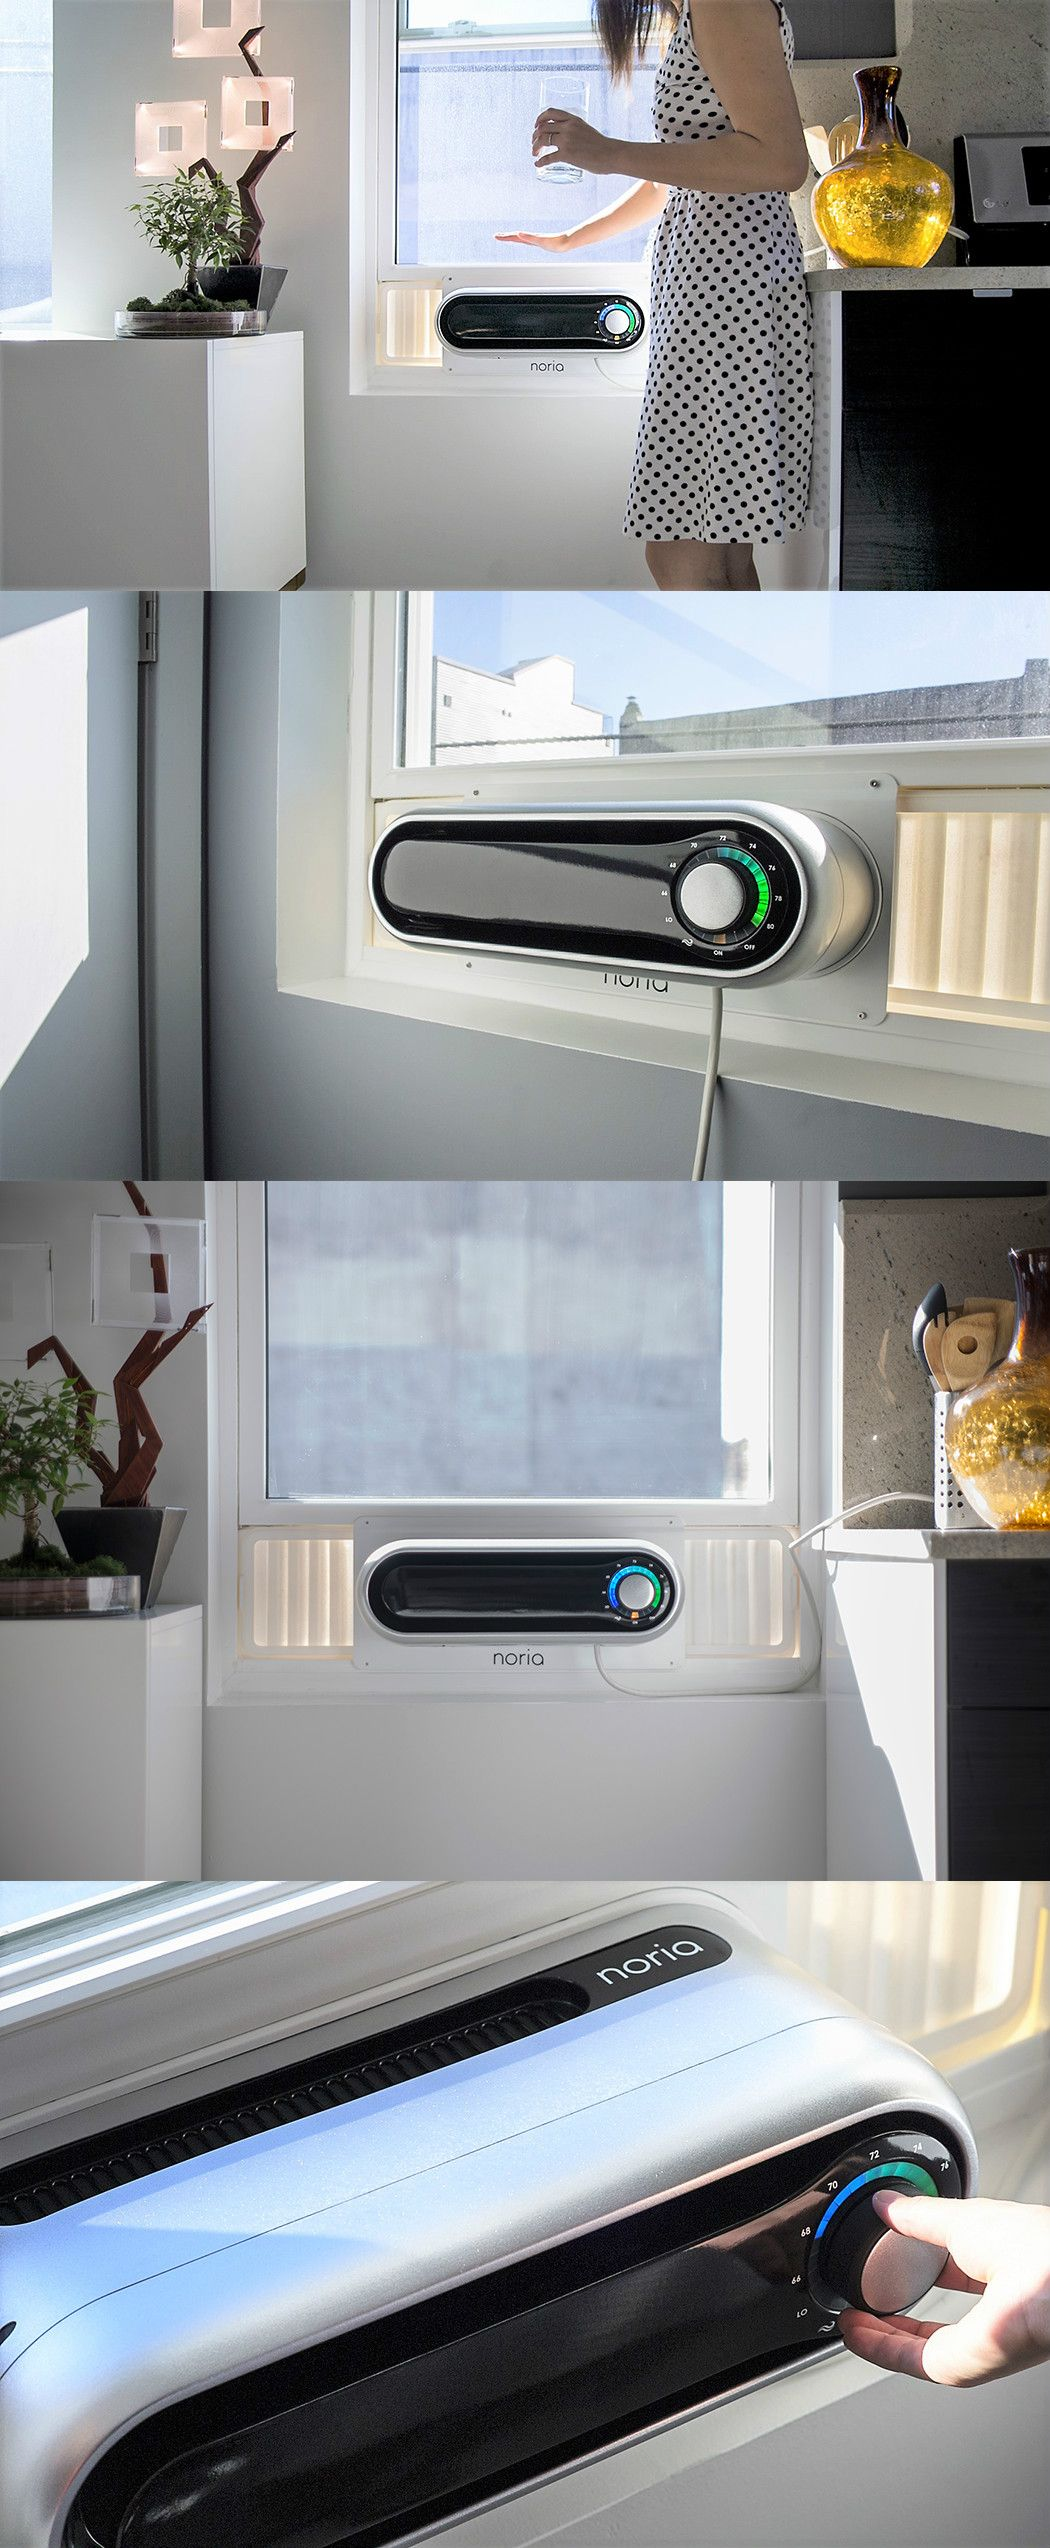 However ugly they are window air conditioning units can be a total lifesaver for those without